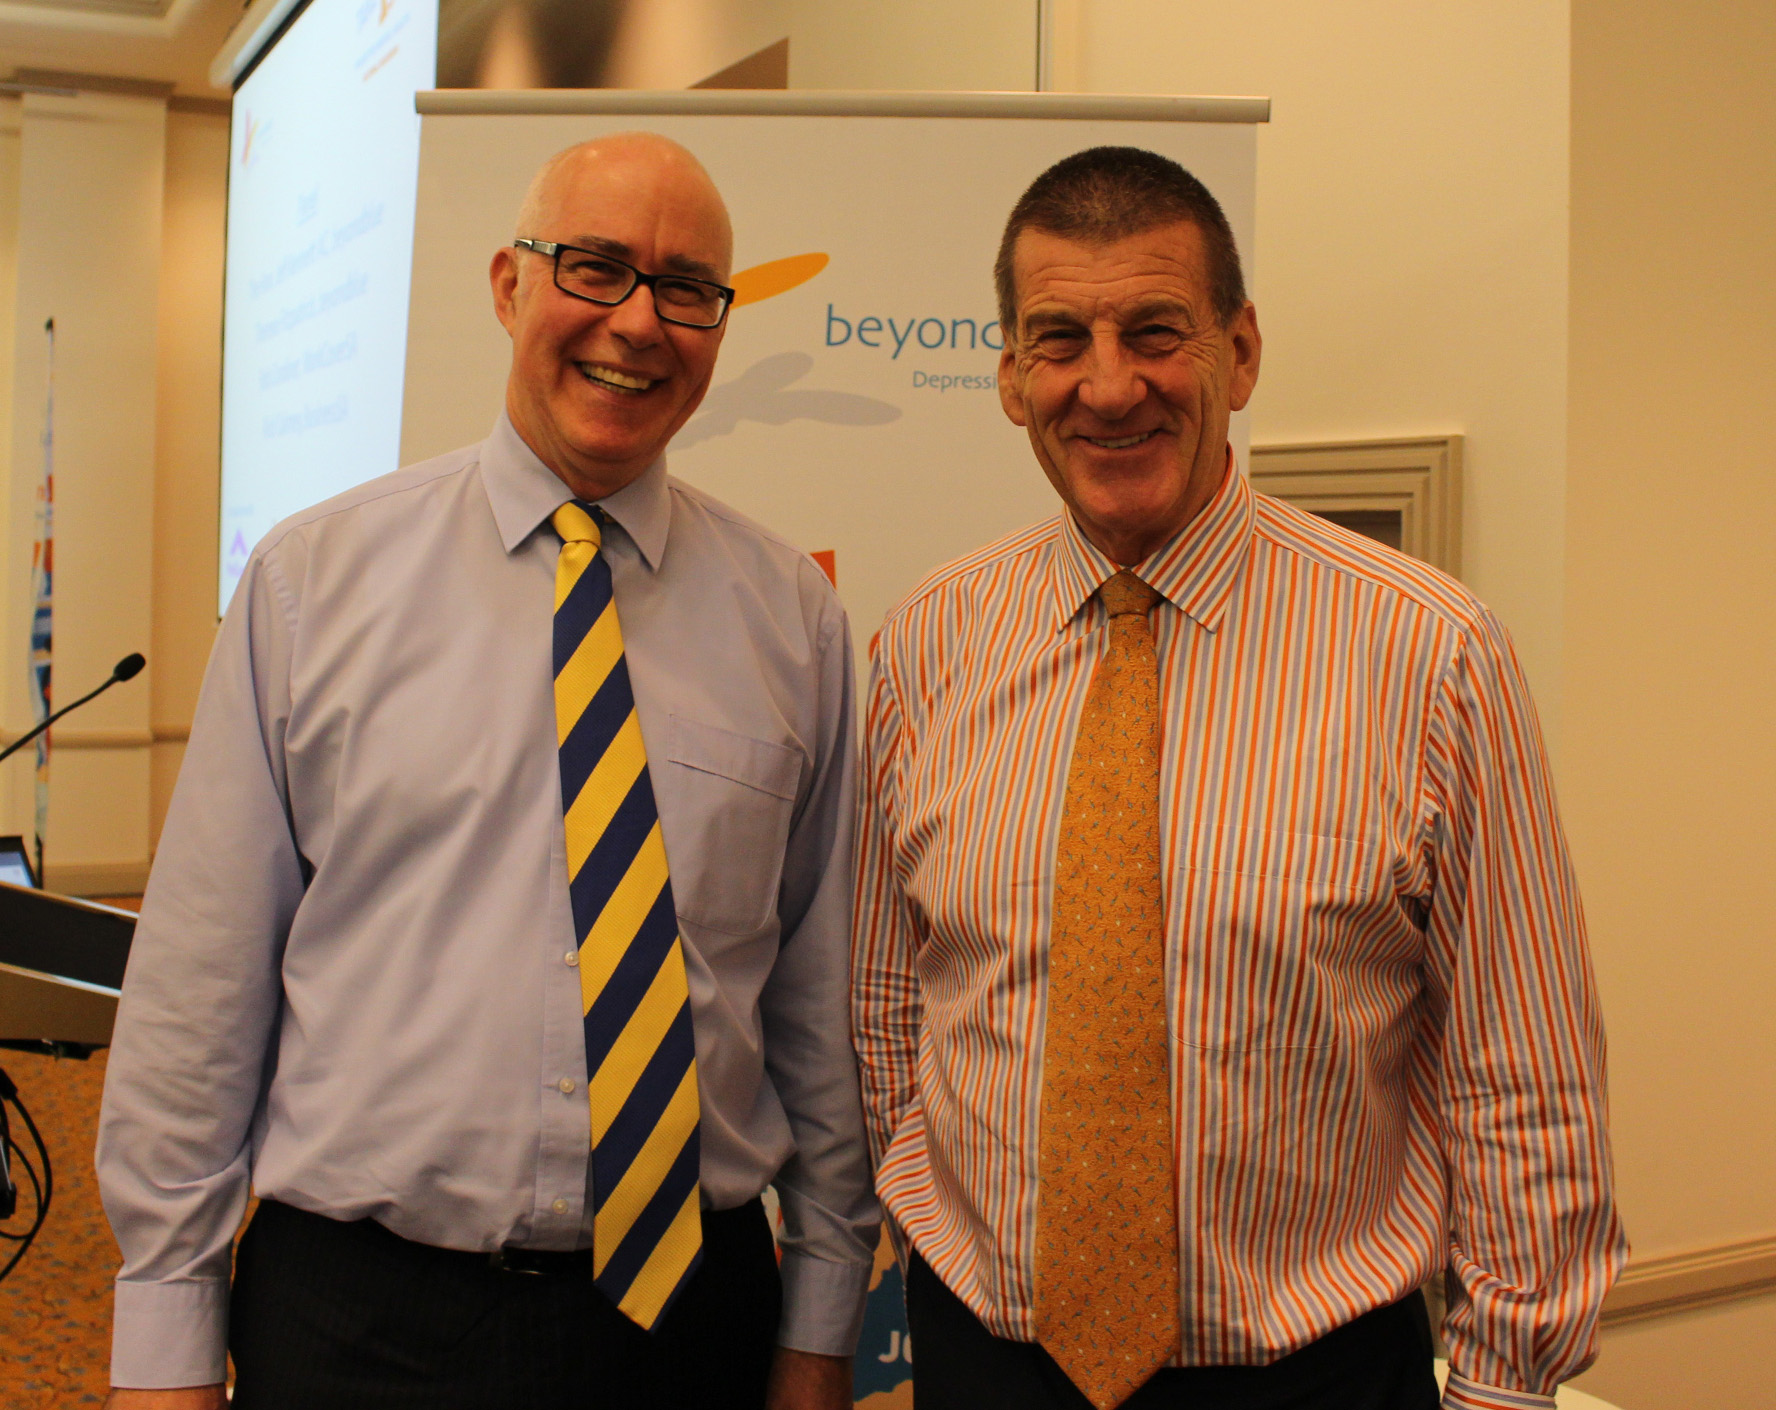 WorkCoverSA General Manager of Insurance Rob Cordiner and Beyond Blue Chairman The Hon Jeff Kennett at the workplace breakfast in Adelaide.